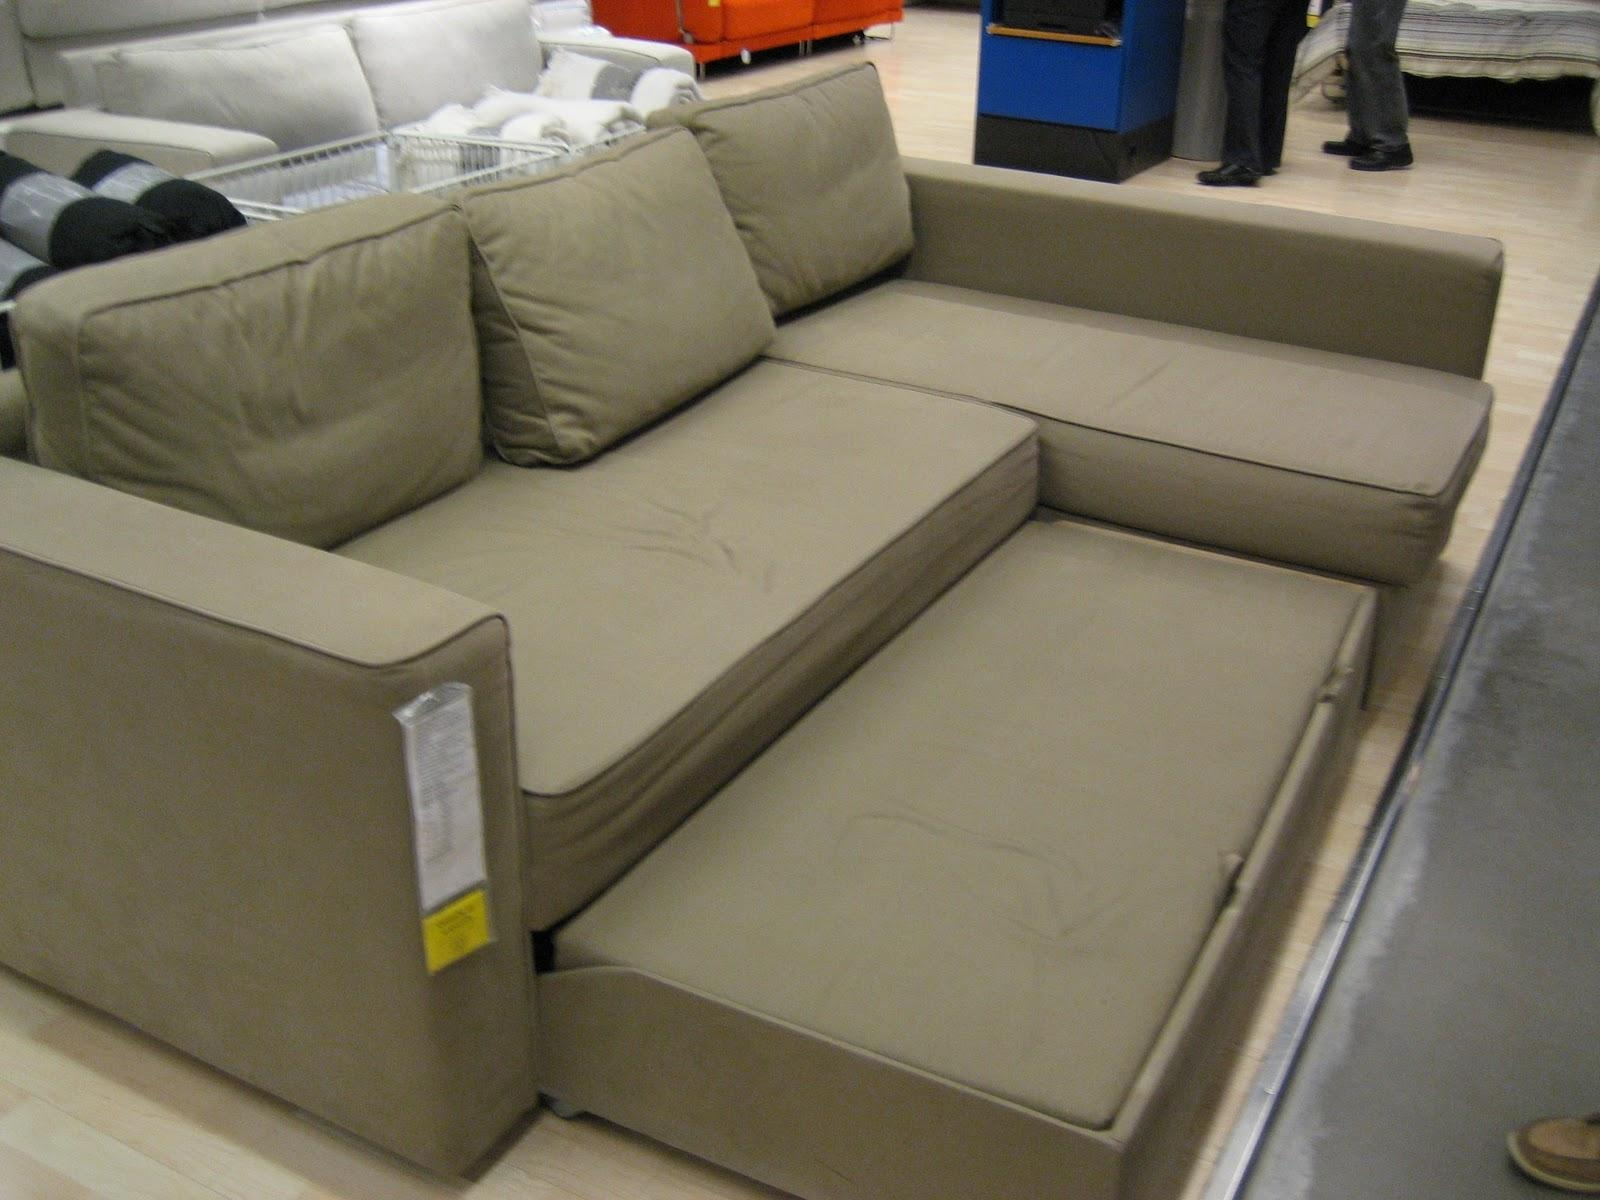 Backyard Sectional Sofa Pull Out Unforgettable Photo Concept Throughout Sofa Beds With Chaise Lounge (View 19 of 20)